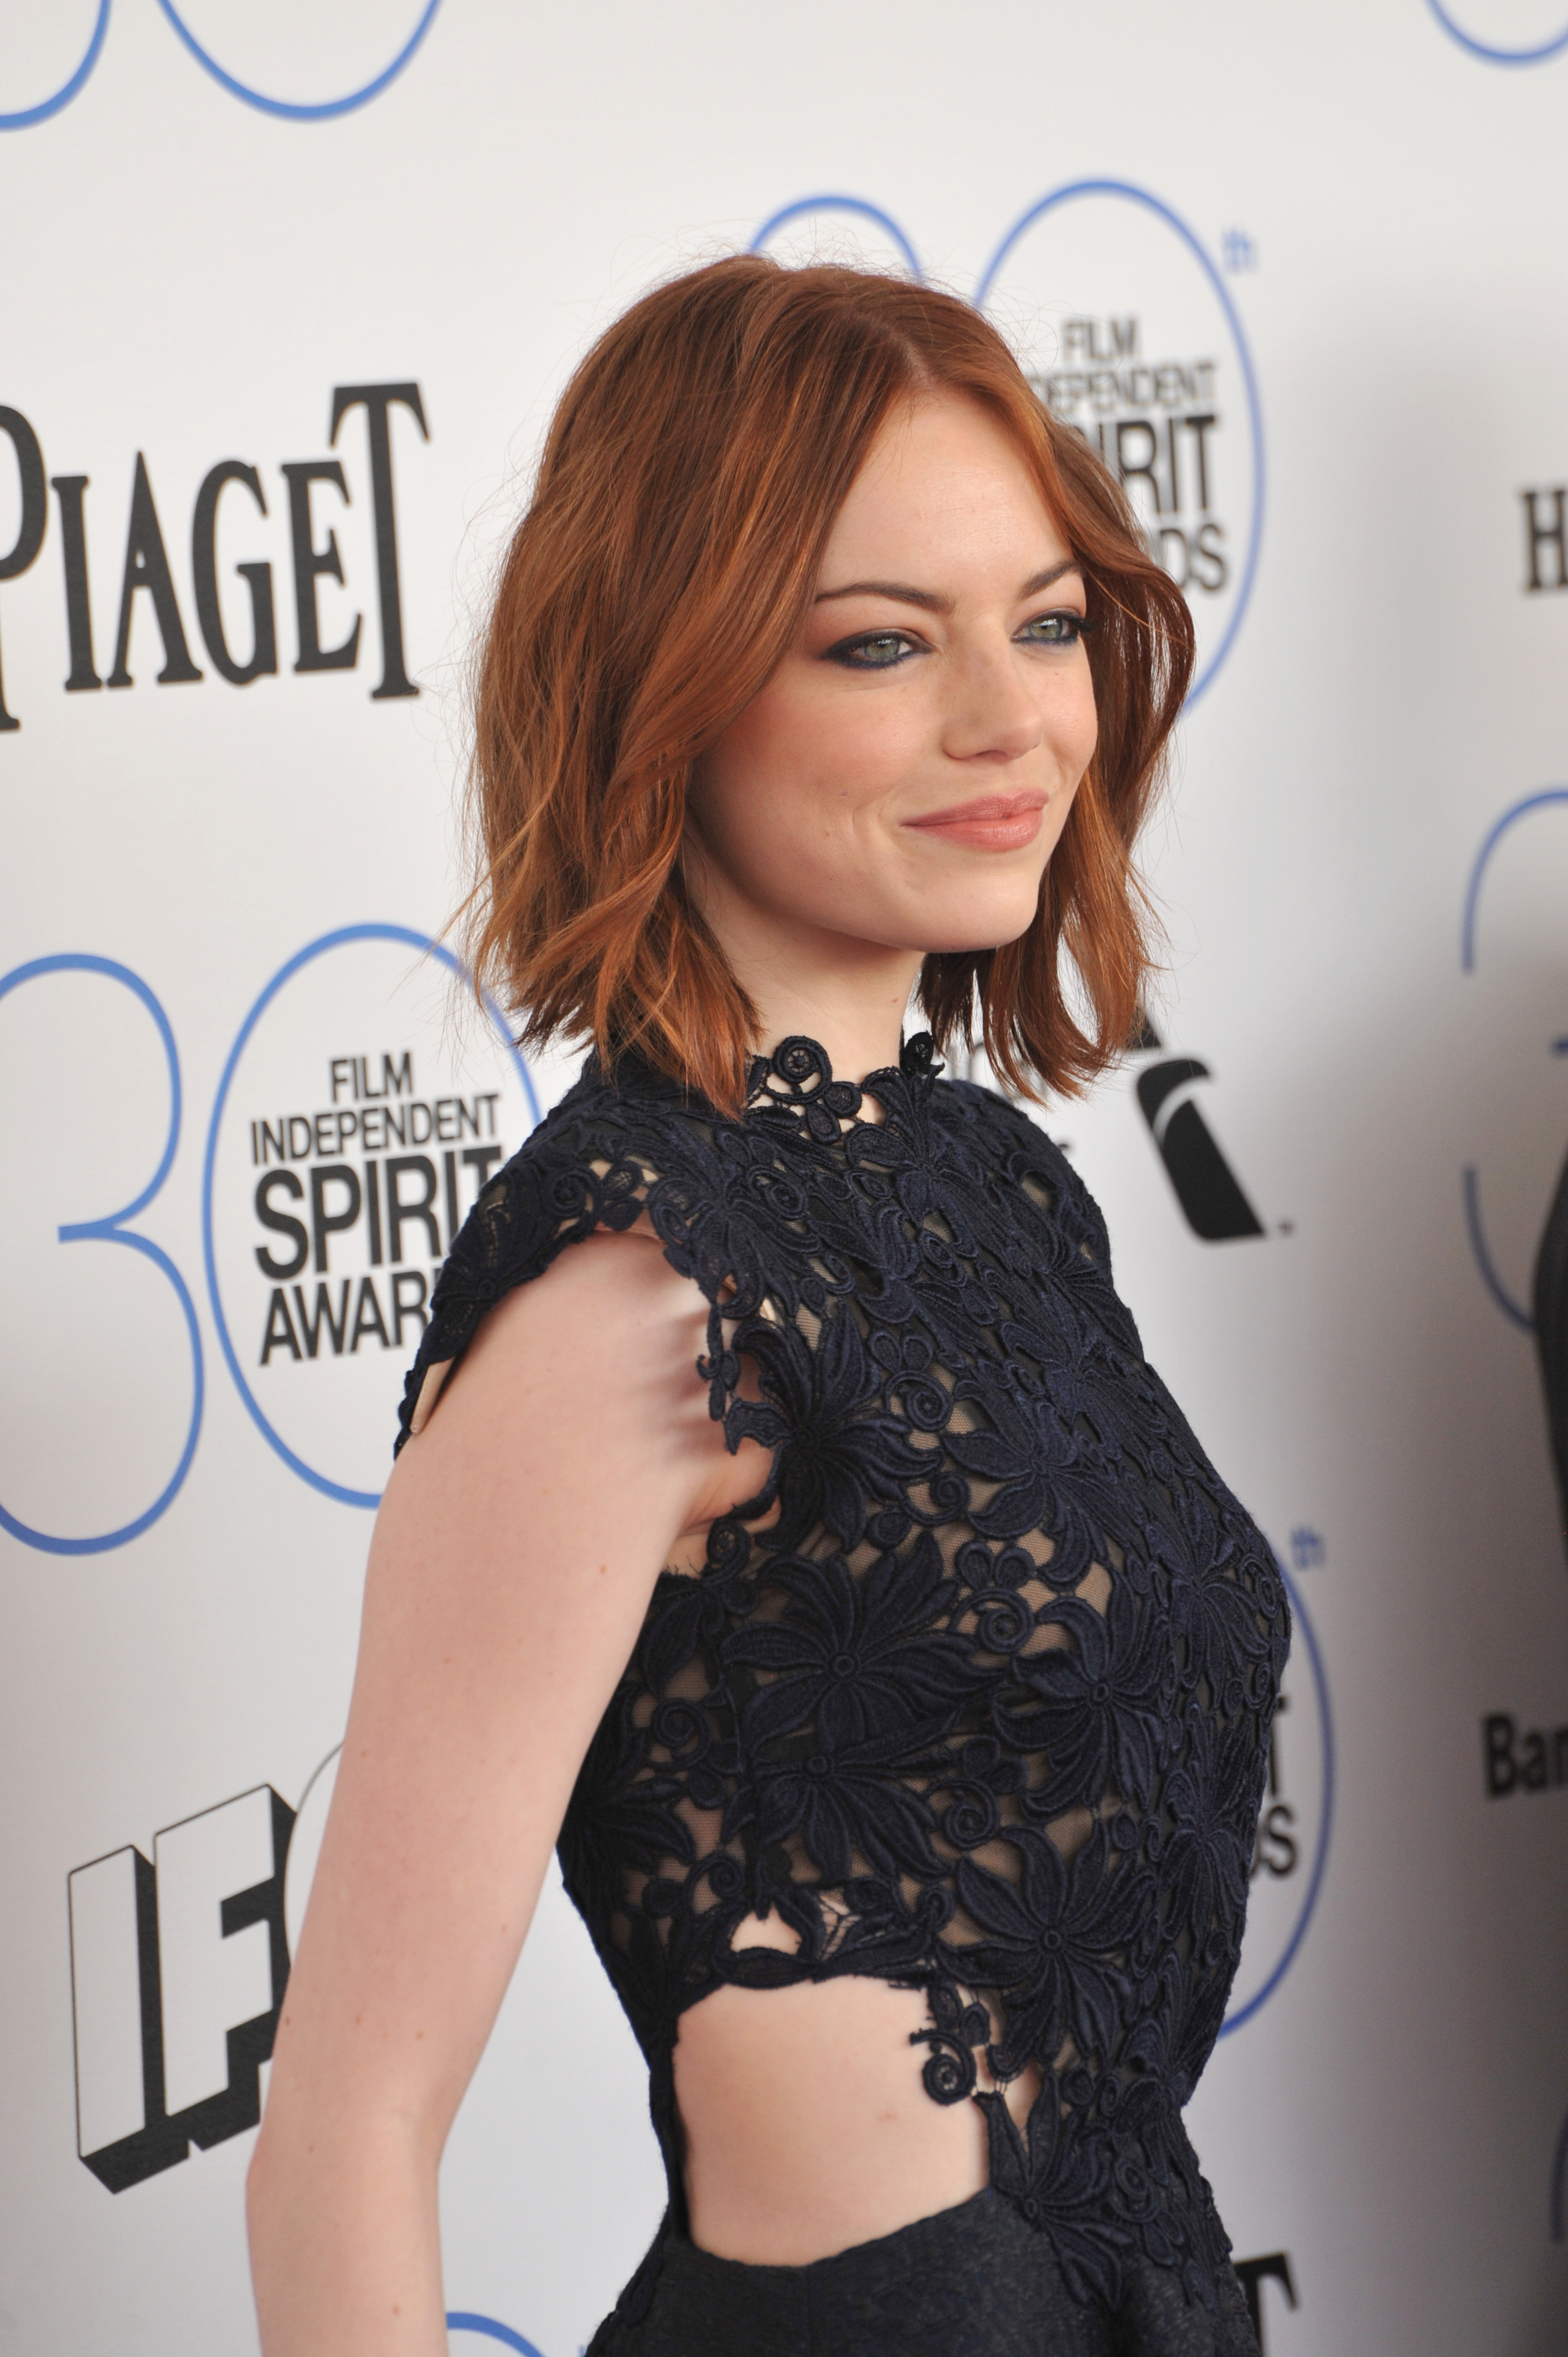 Emma Stone in 2015 (before filming La La Land) at the Independent Spirit Awards Photo: Featureflash Photo Agency / Shutterstock